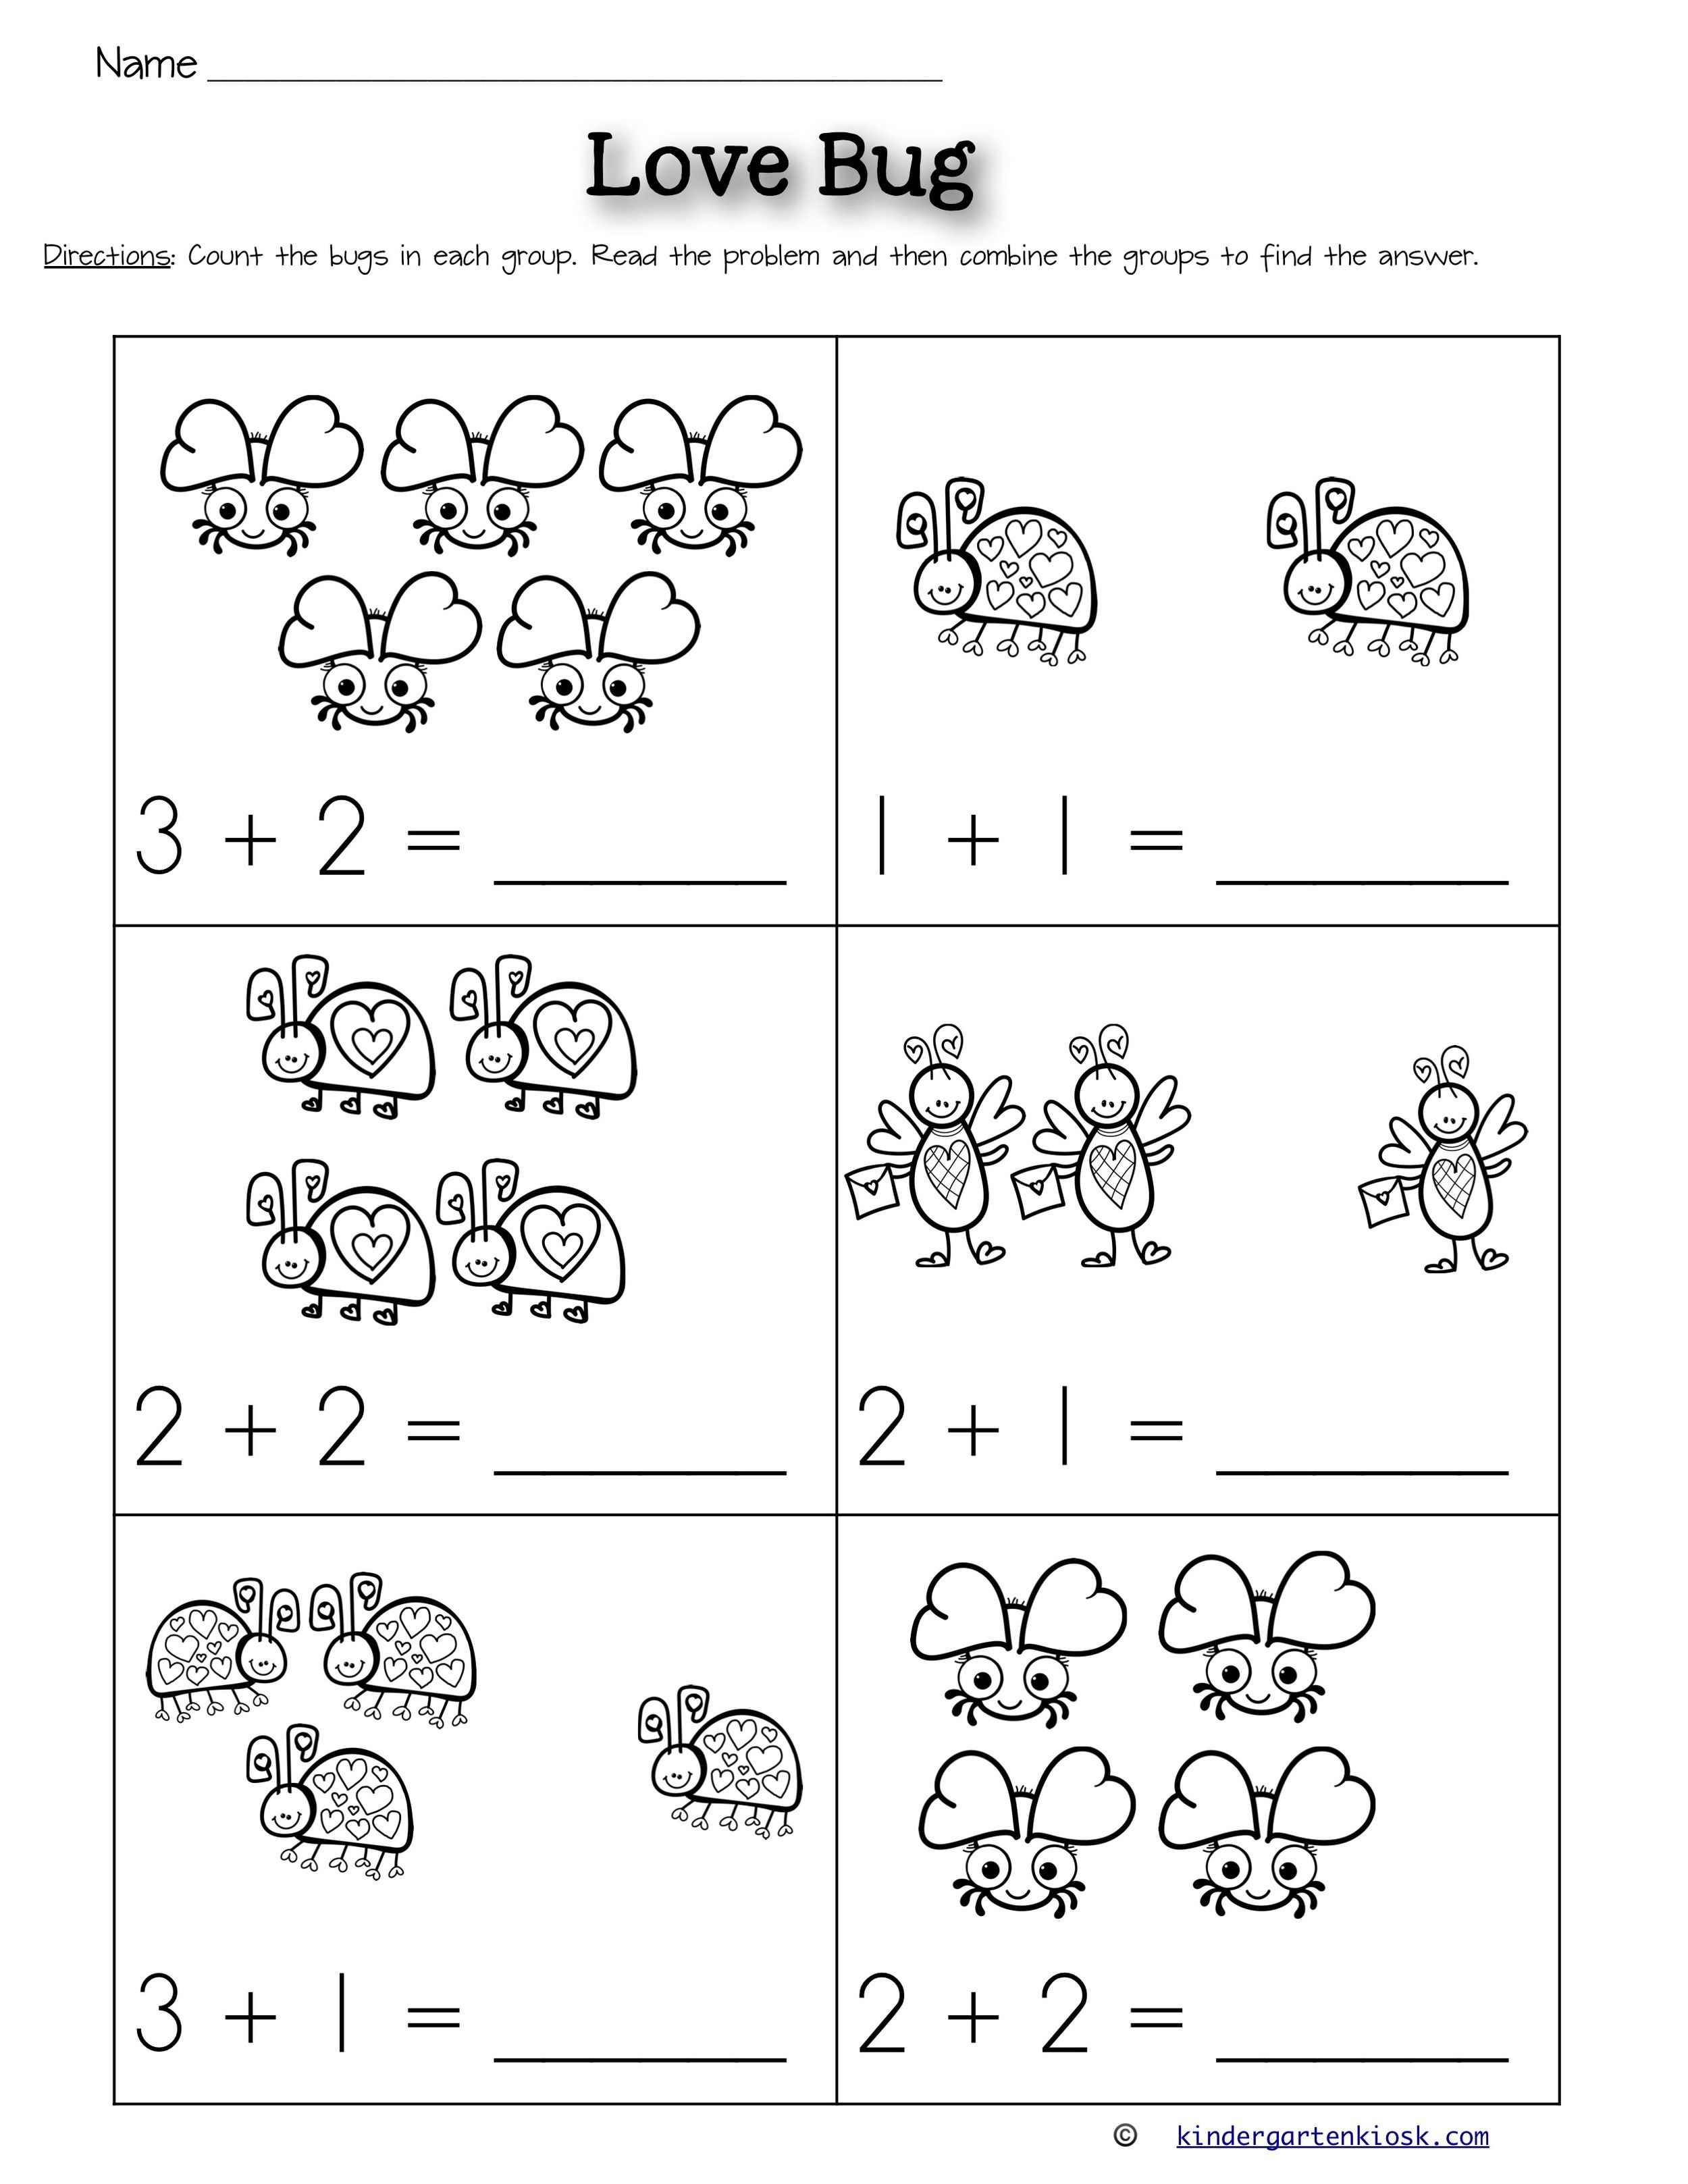 Addition 0 5 Worksheets February Kindergarten Kiosk Kindergarten Addition Worksheets Kindergarten Math Worksheets Addition Math Addition Worksheets